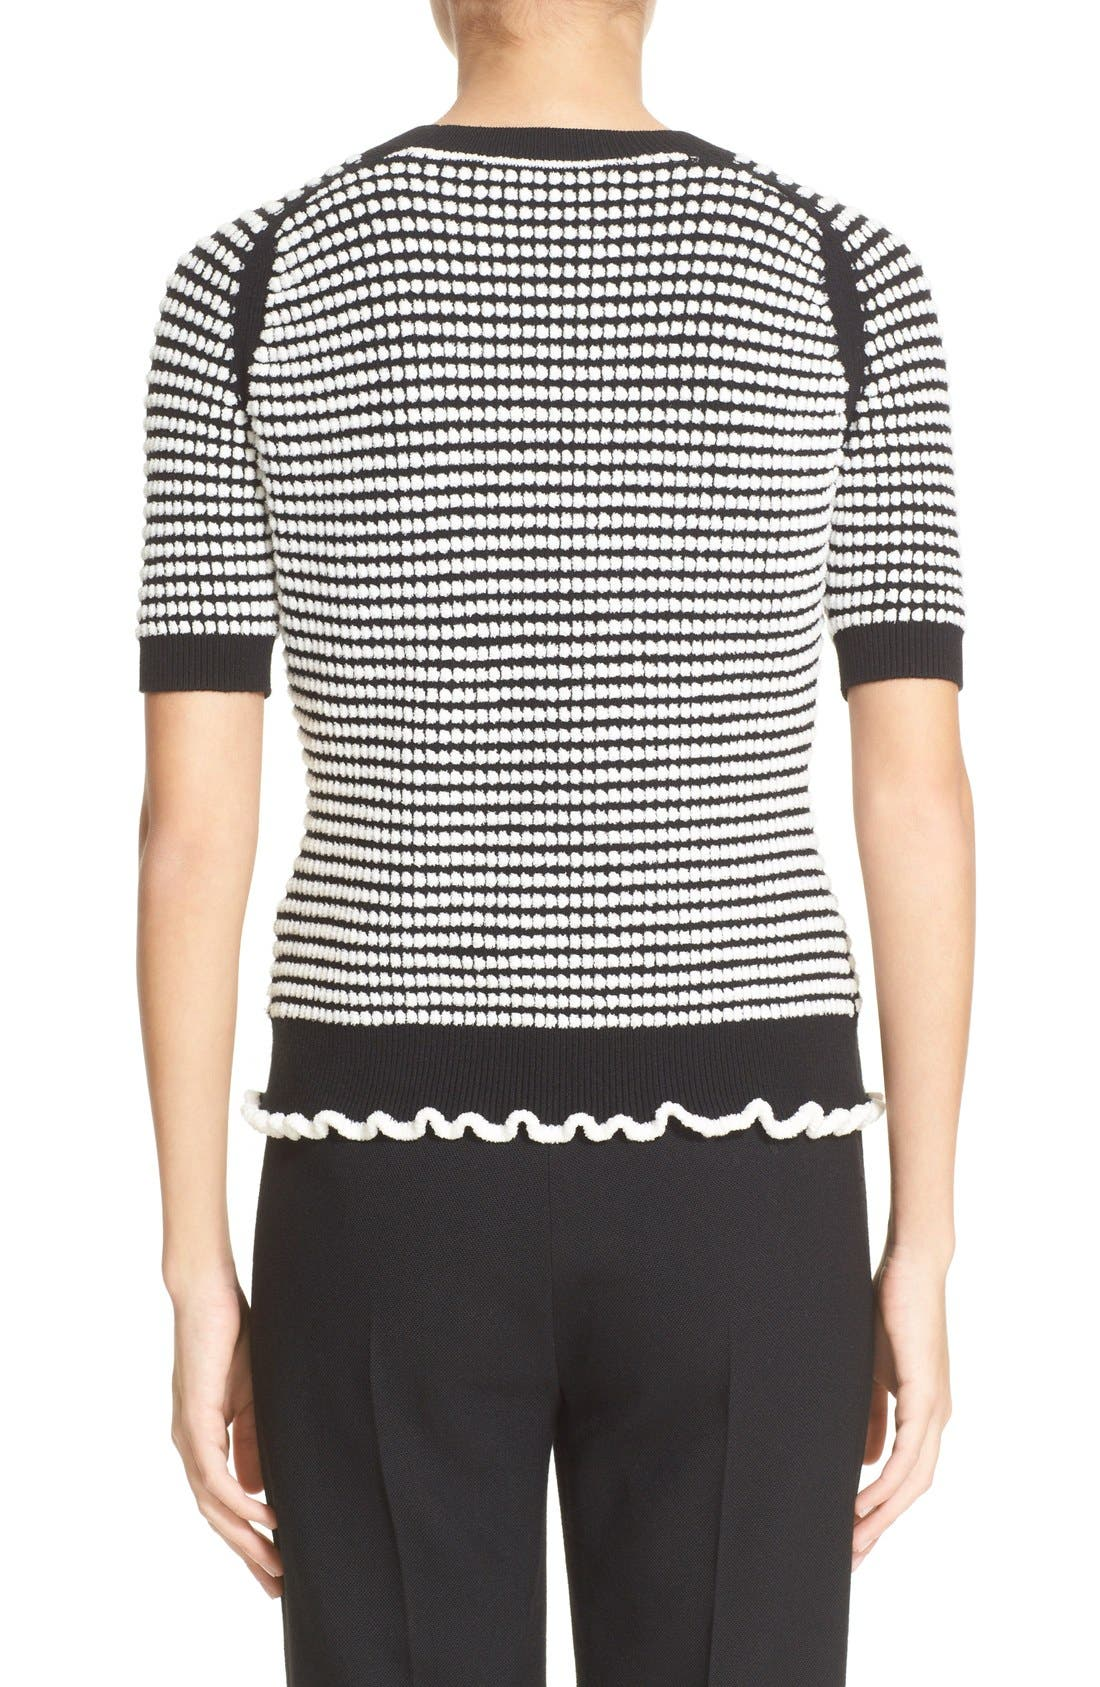 Alternate Image 3  - 3.1 Phillip Lim Knit Ruffle Hem Sweater